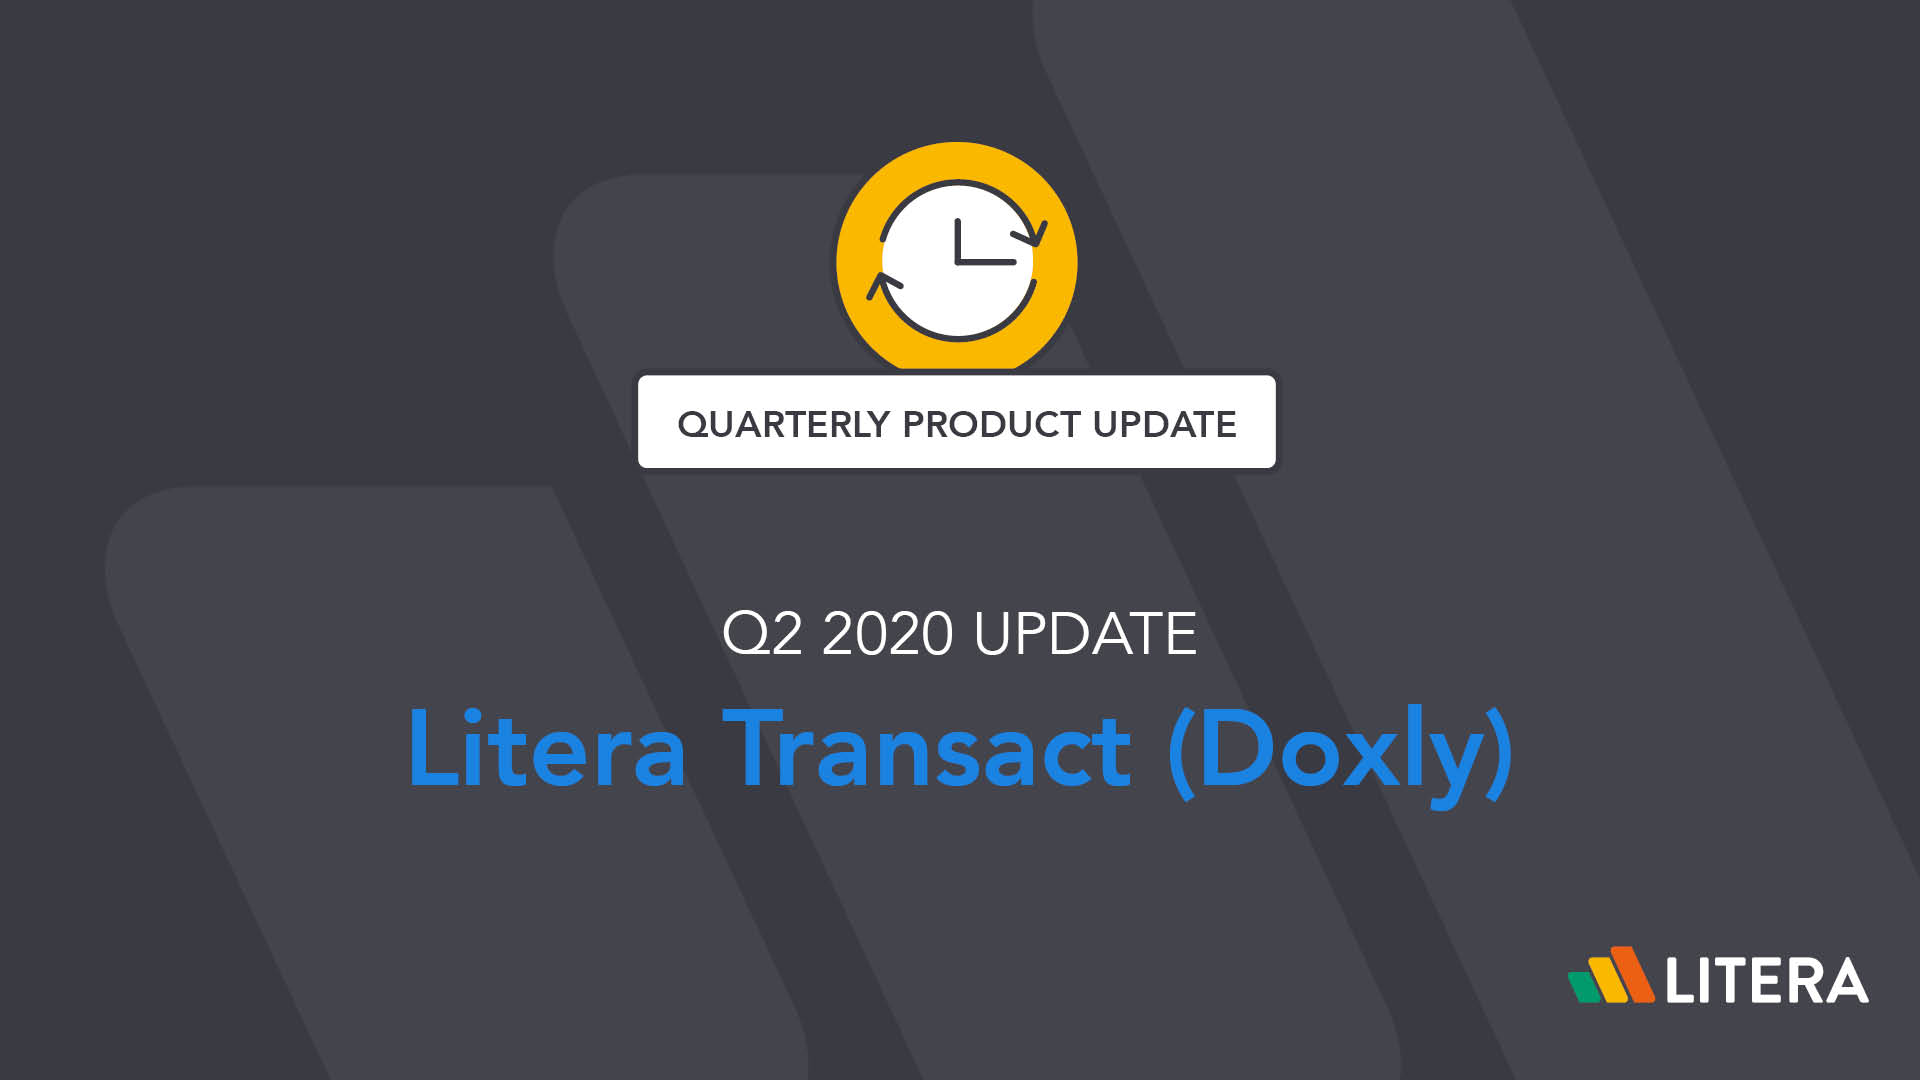 Litera Transact (Doxly) v3.13, 3.14, and 3.15 by Litera